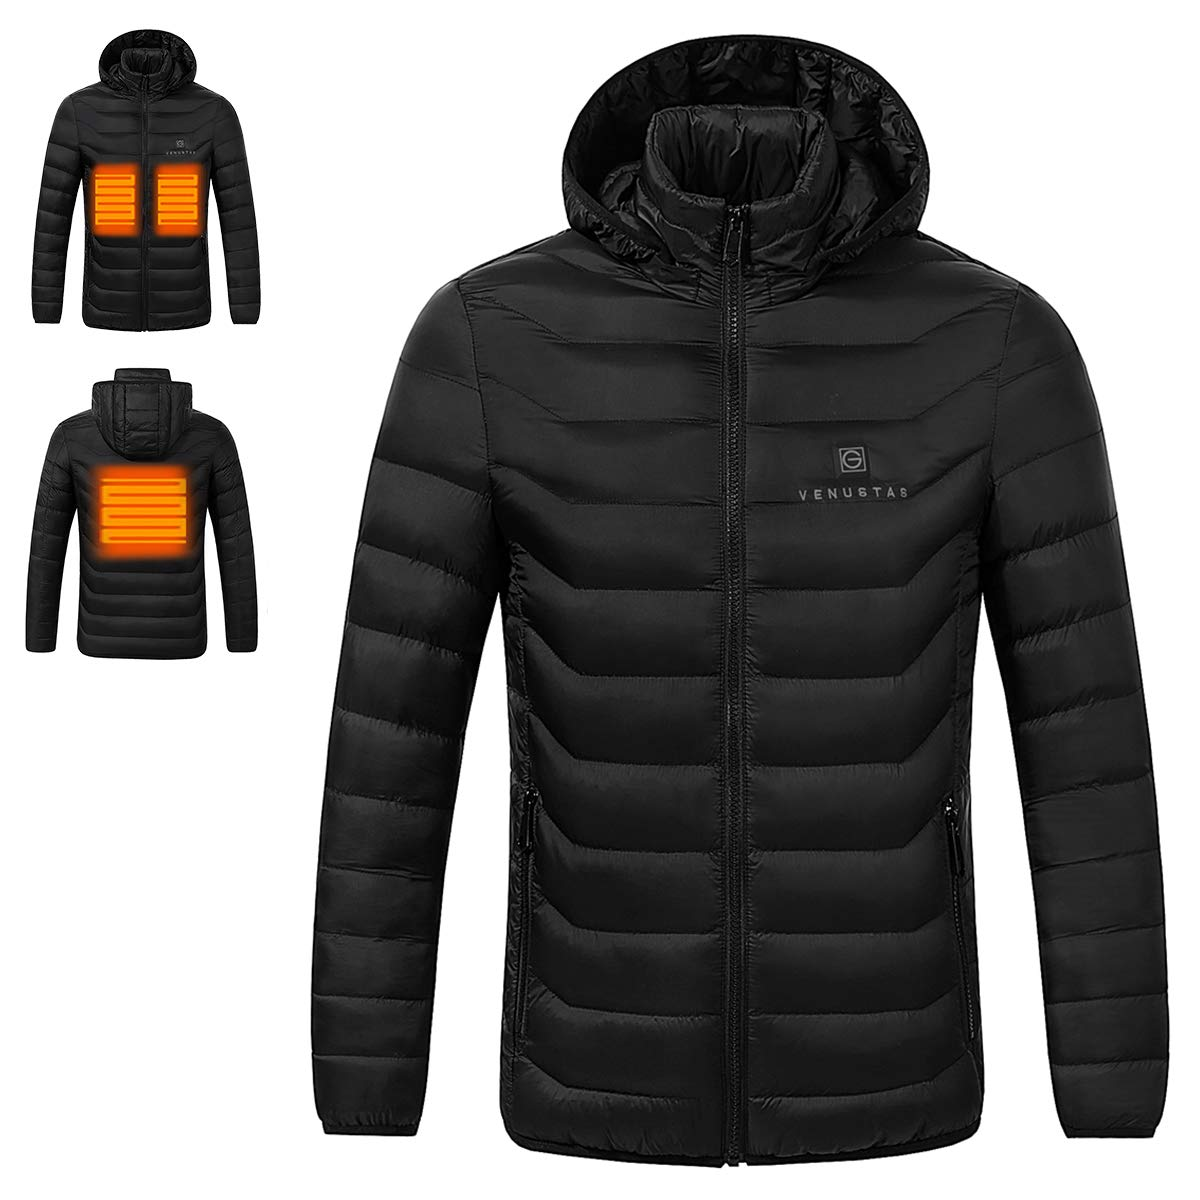 Venustas [2019 Upgrade] Heated Jacket with Battery Pack (Unisex), Heated Coat for Men and Women with Detachable Hood Black by Venustas